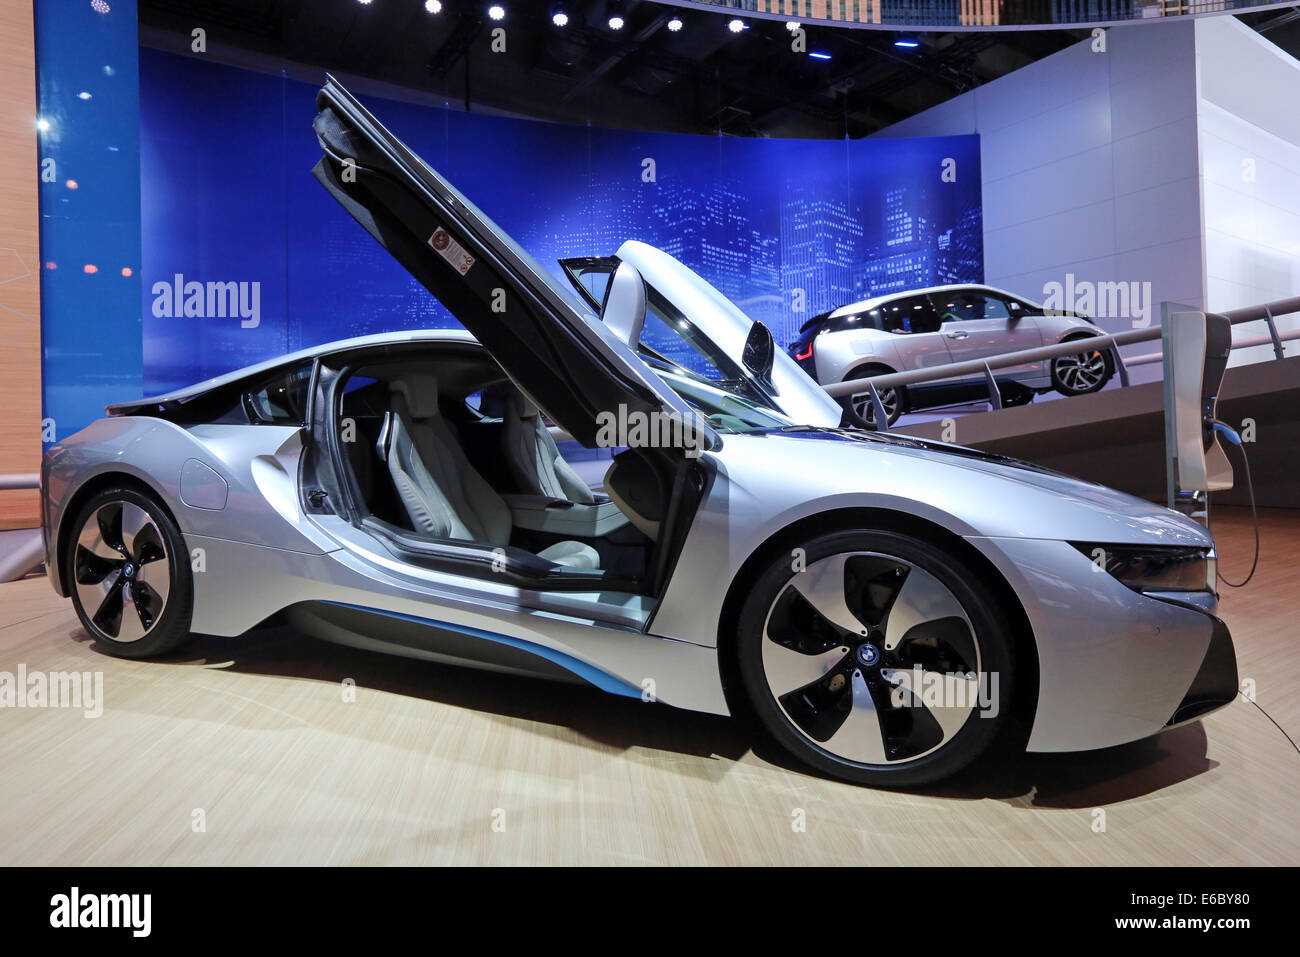 Hybrid Car Bmw I8 Front And Electric Car Bmw I3 At The 65th Stock